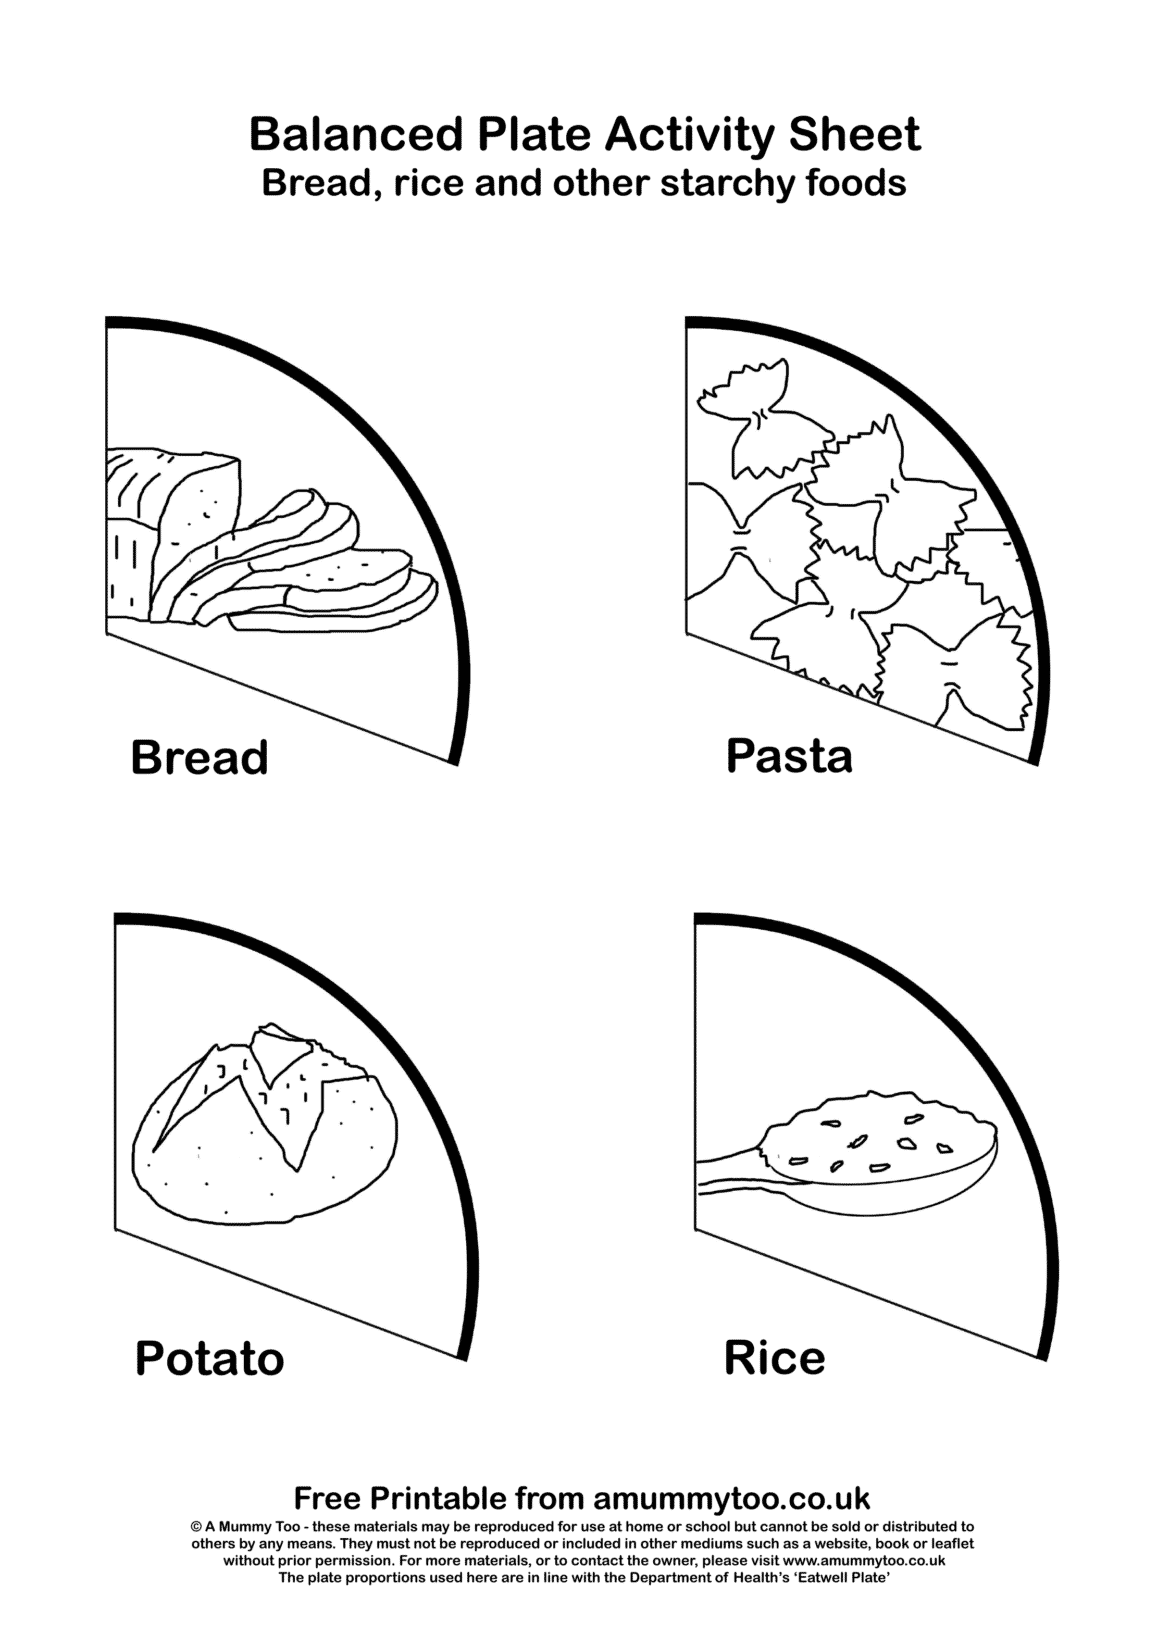 Balanced plate activity sheet with different carbohydrates including potato, bread, pasta and rice.